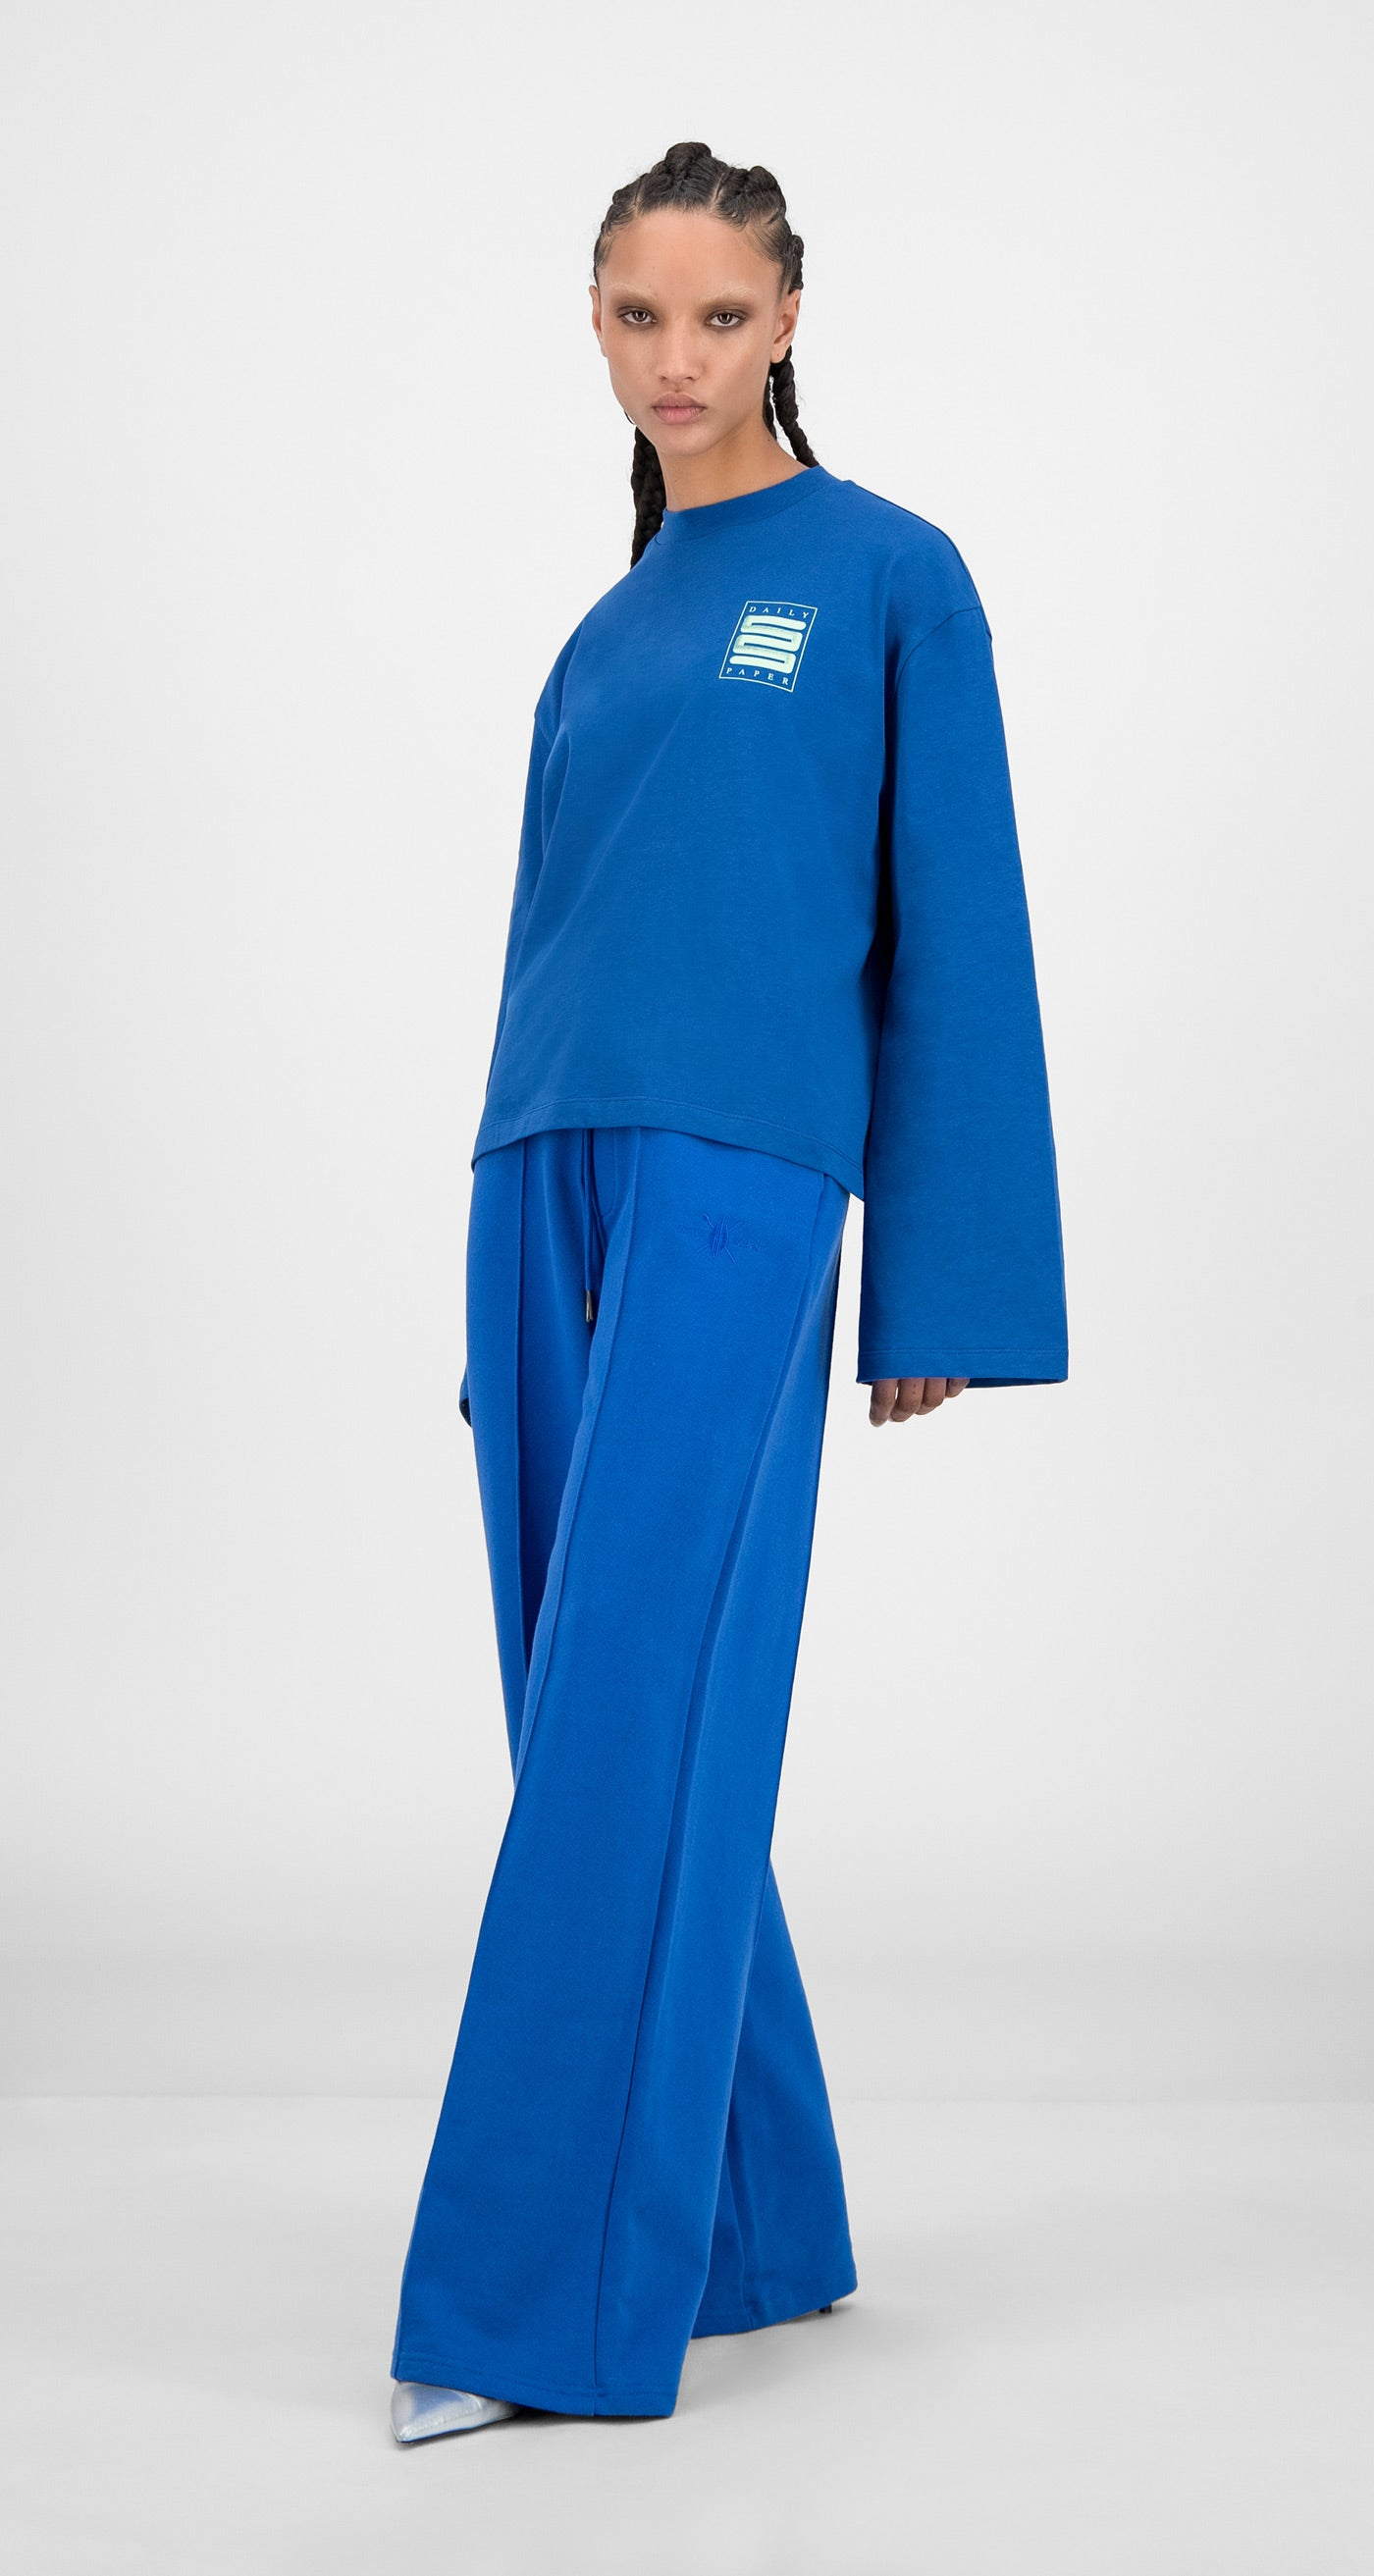 Daily Paper - Olympian Blue Hasoly Long Sleeve - Women